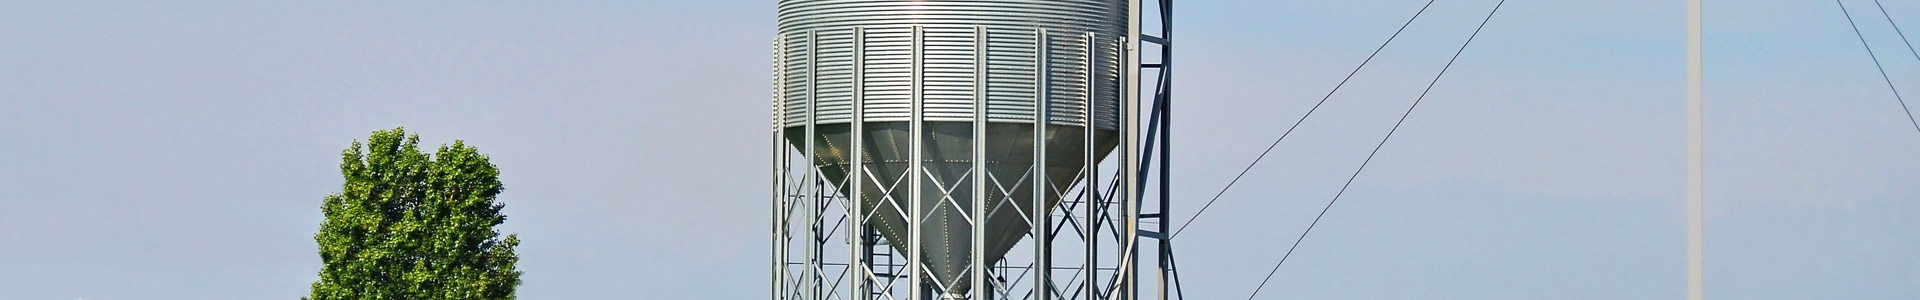 Grain Cleaners and Dryers